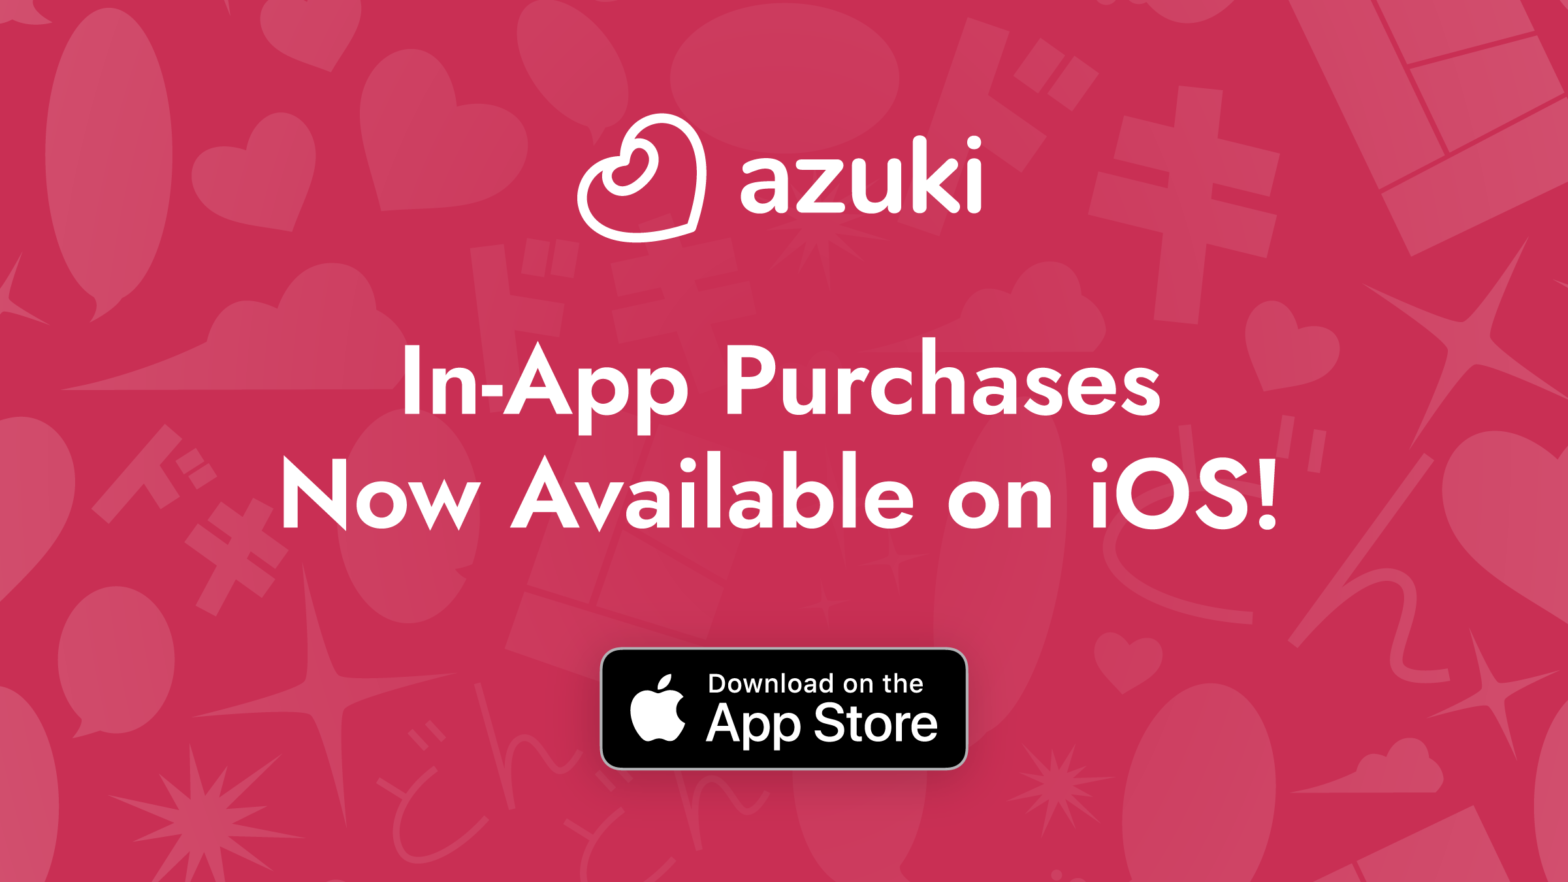 Azuki: In-App Purchases New Available on iOS! Download on the App Store.